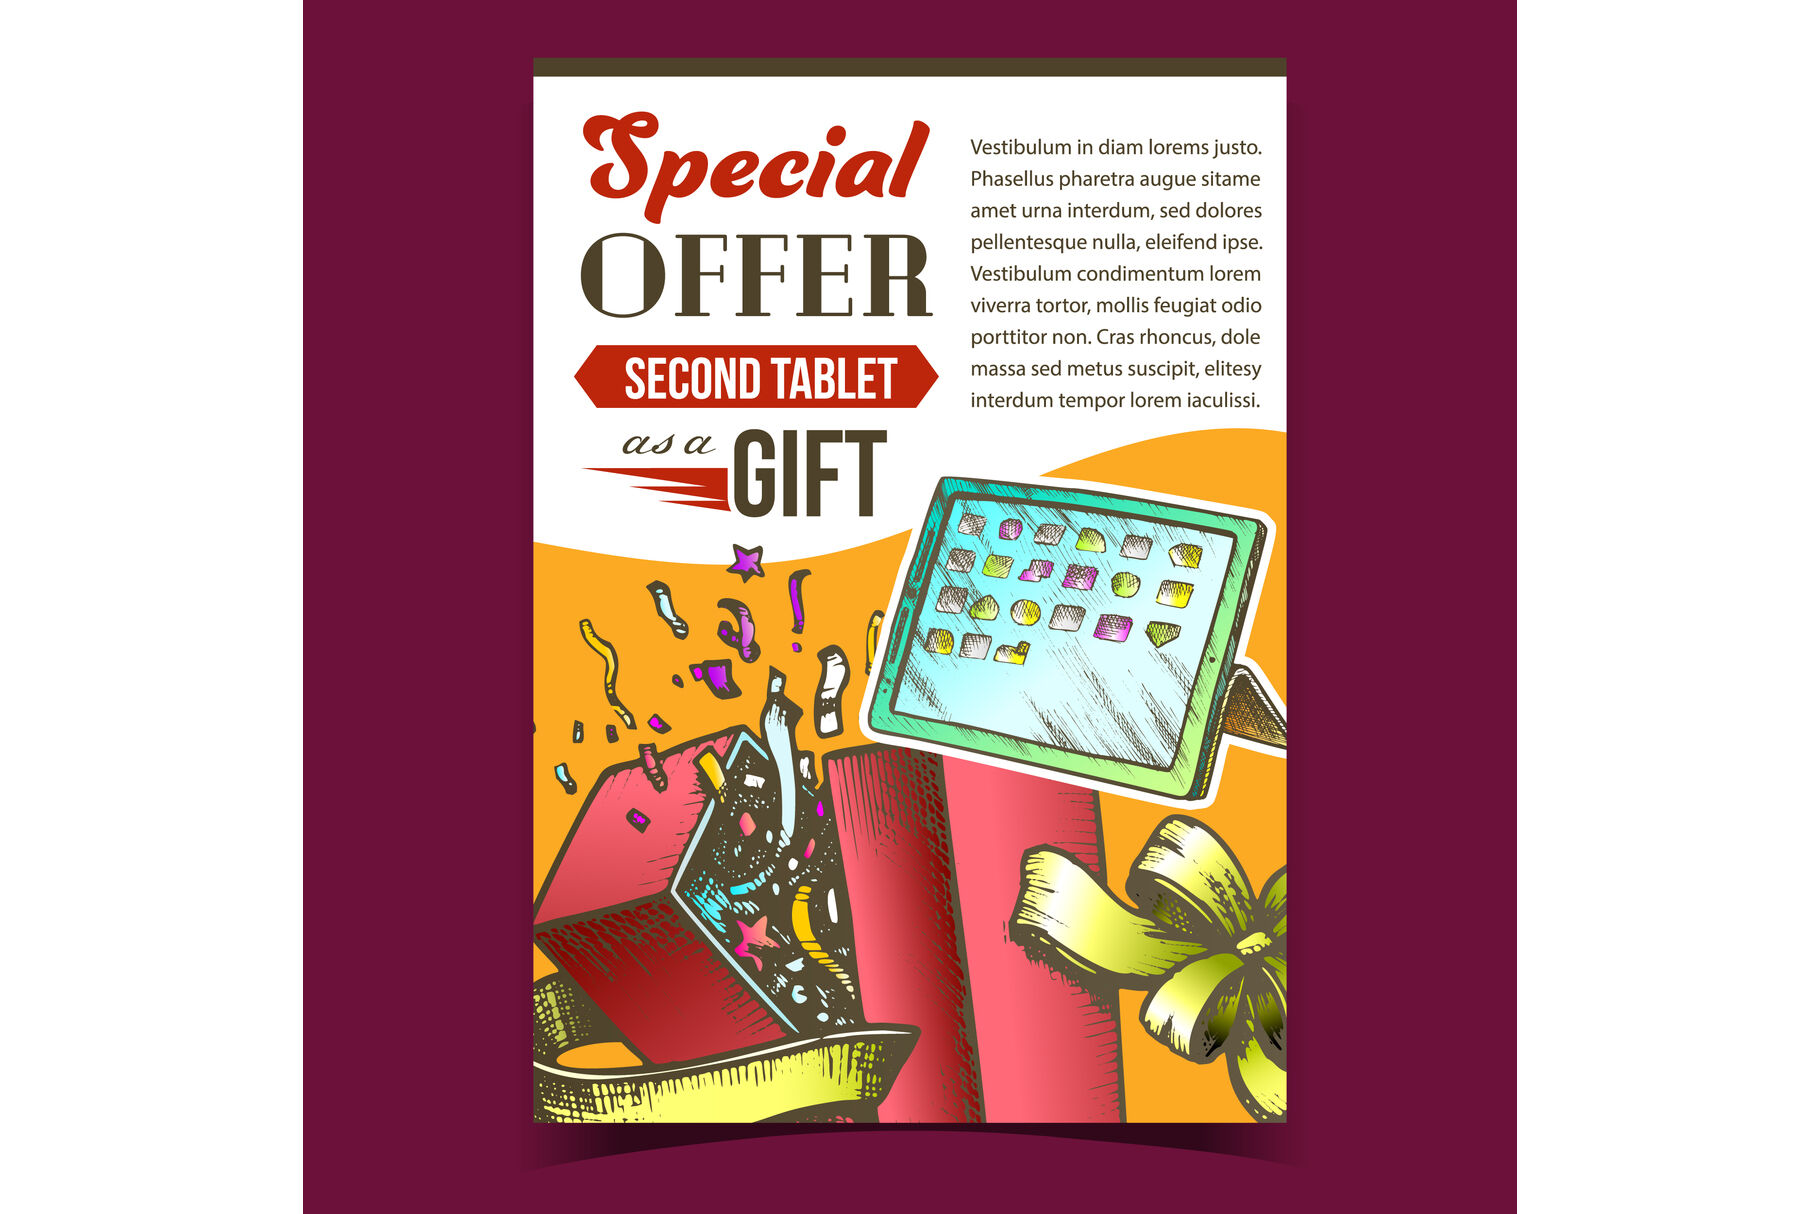 Special Offer Gift Box Advertise Poster Vector By Pikepicture Thehungryjpeg Com